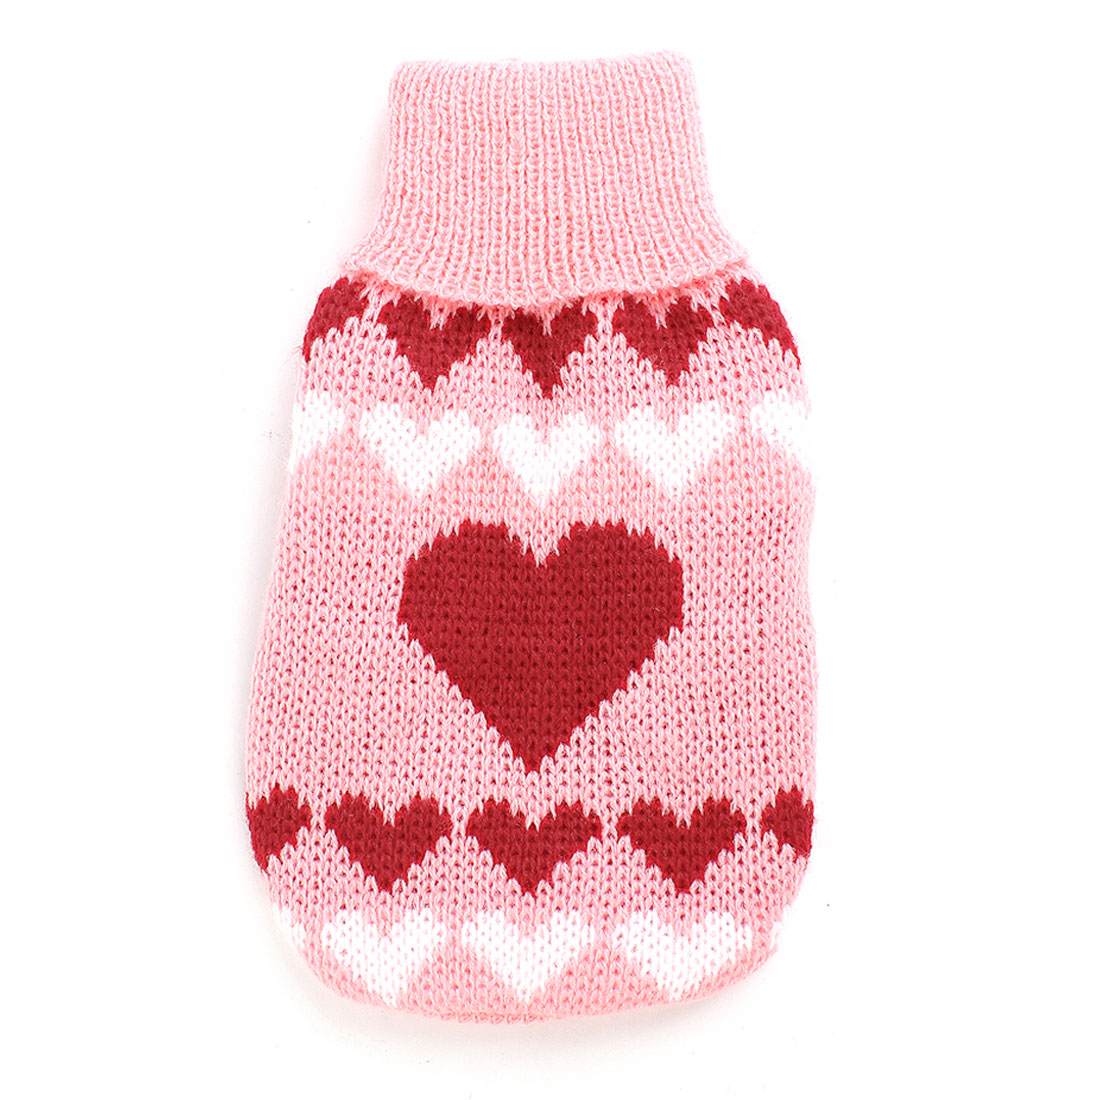 Turtleneck Heart Print Pet Dog Cat Puppy Doggy Knitwear Sweater Pink Red XS